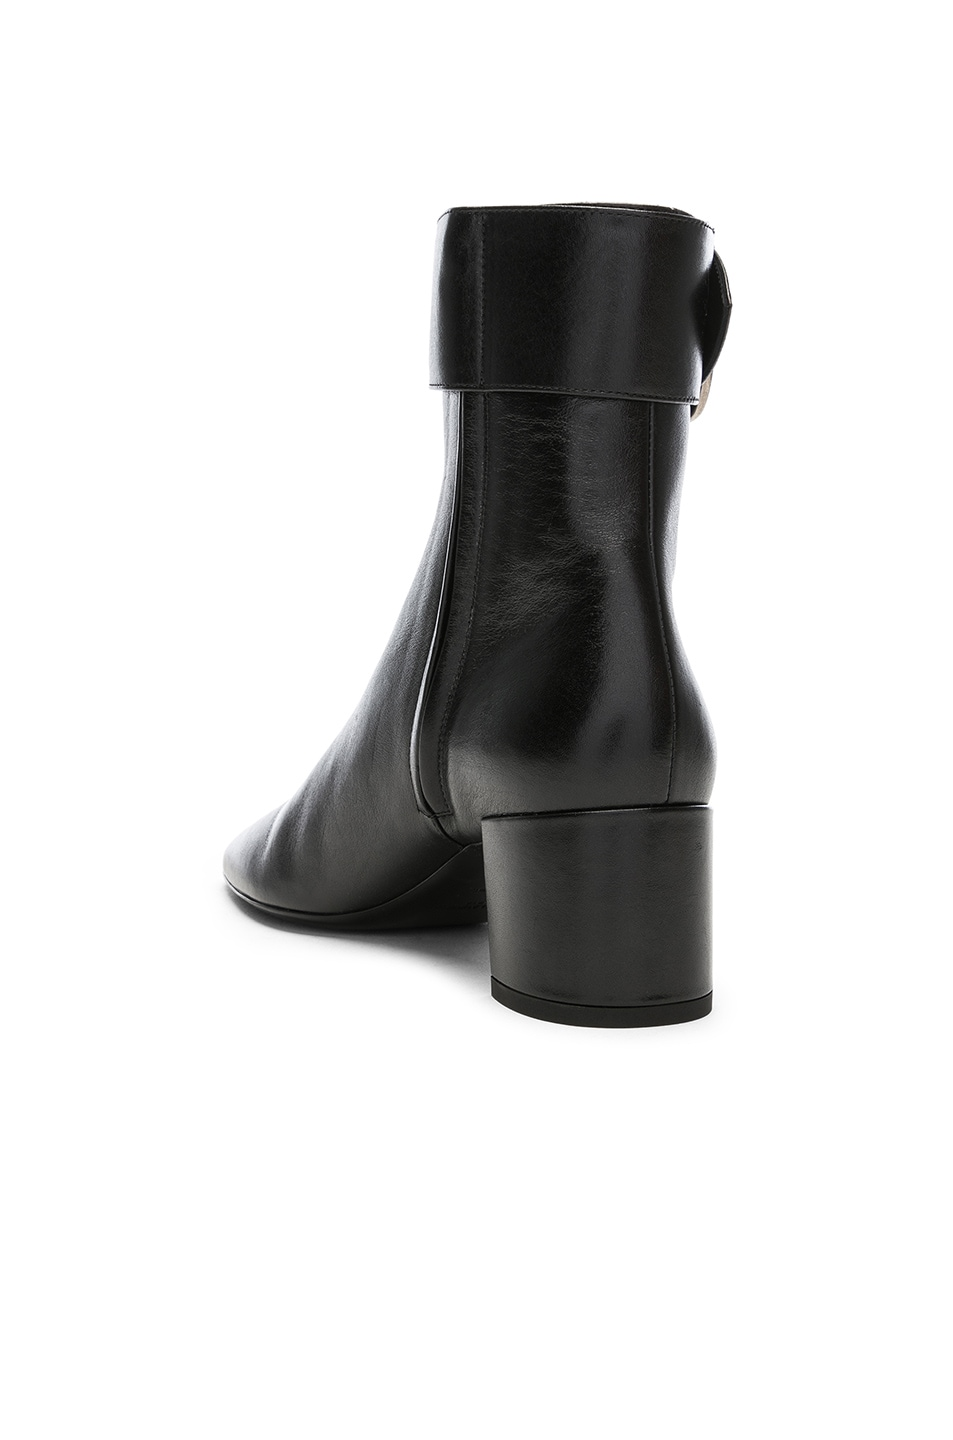 Image 3 of Saint Laurent Leather Joplin Buckle Ankle Boots in Black